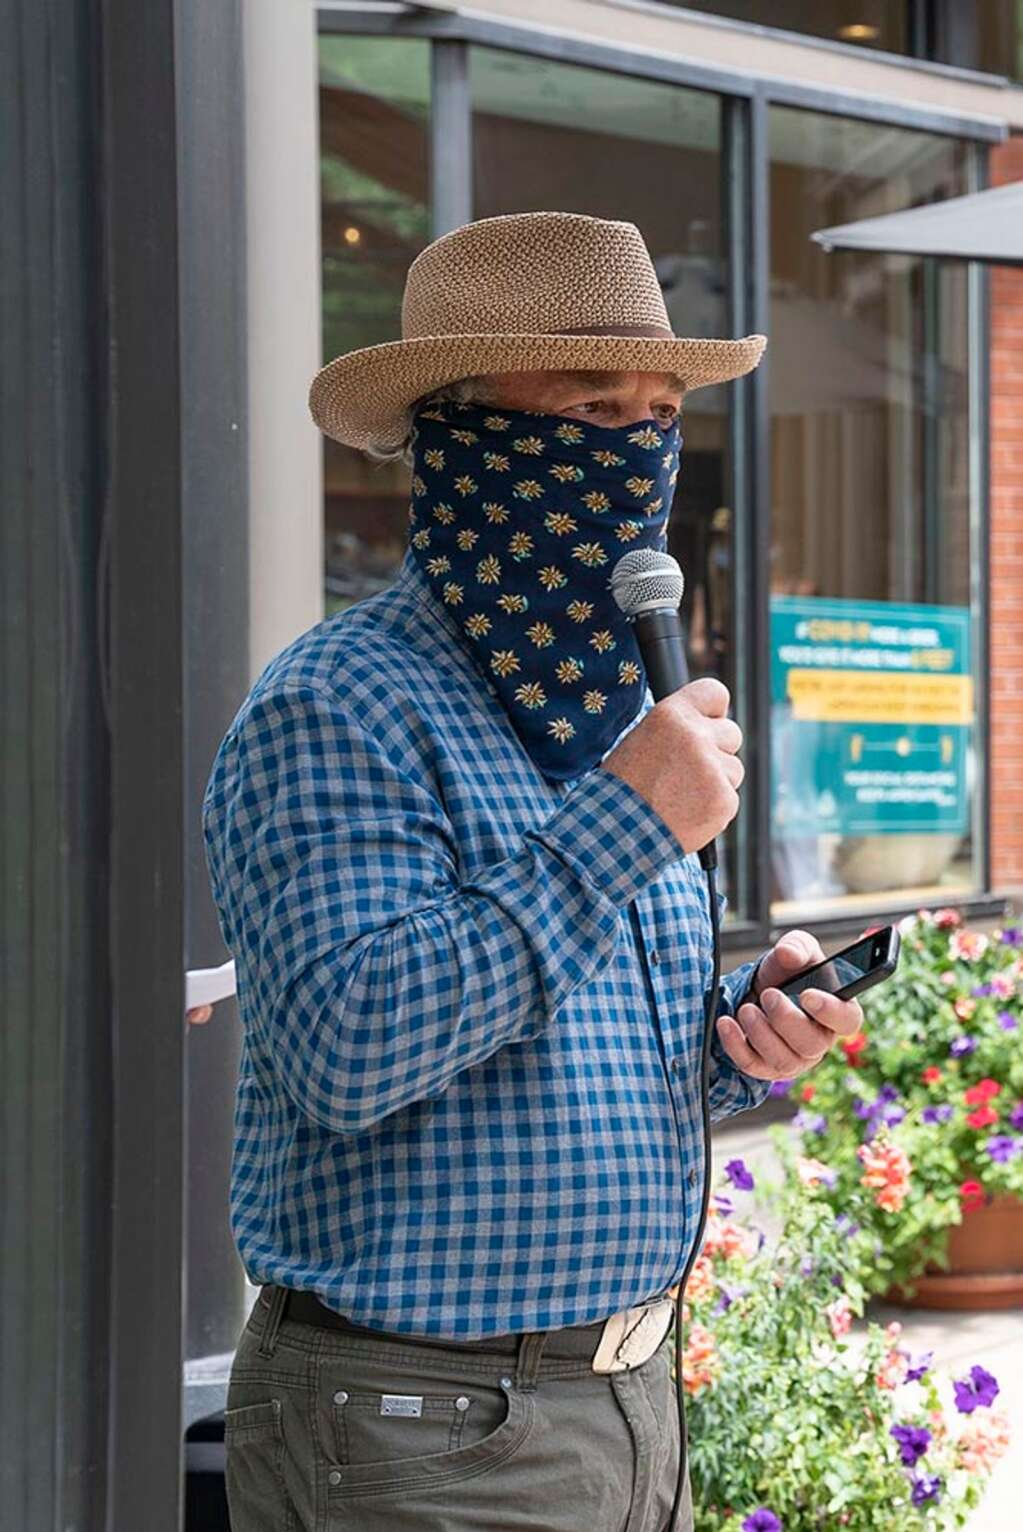 Pitkin County Commissioner Greg Poschman speaks to the audience at Here House about the efficacy of wearing masks.